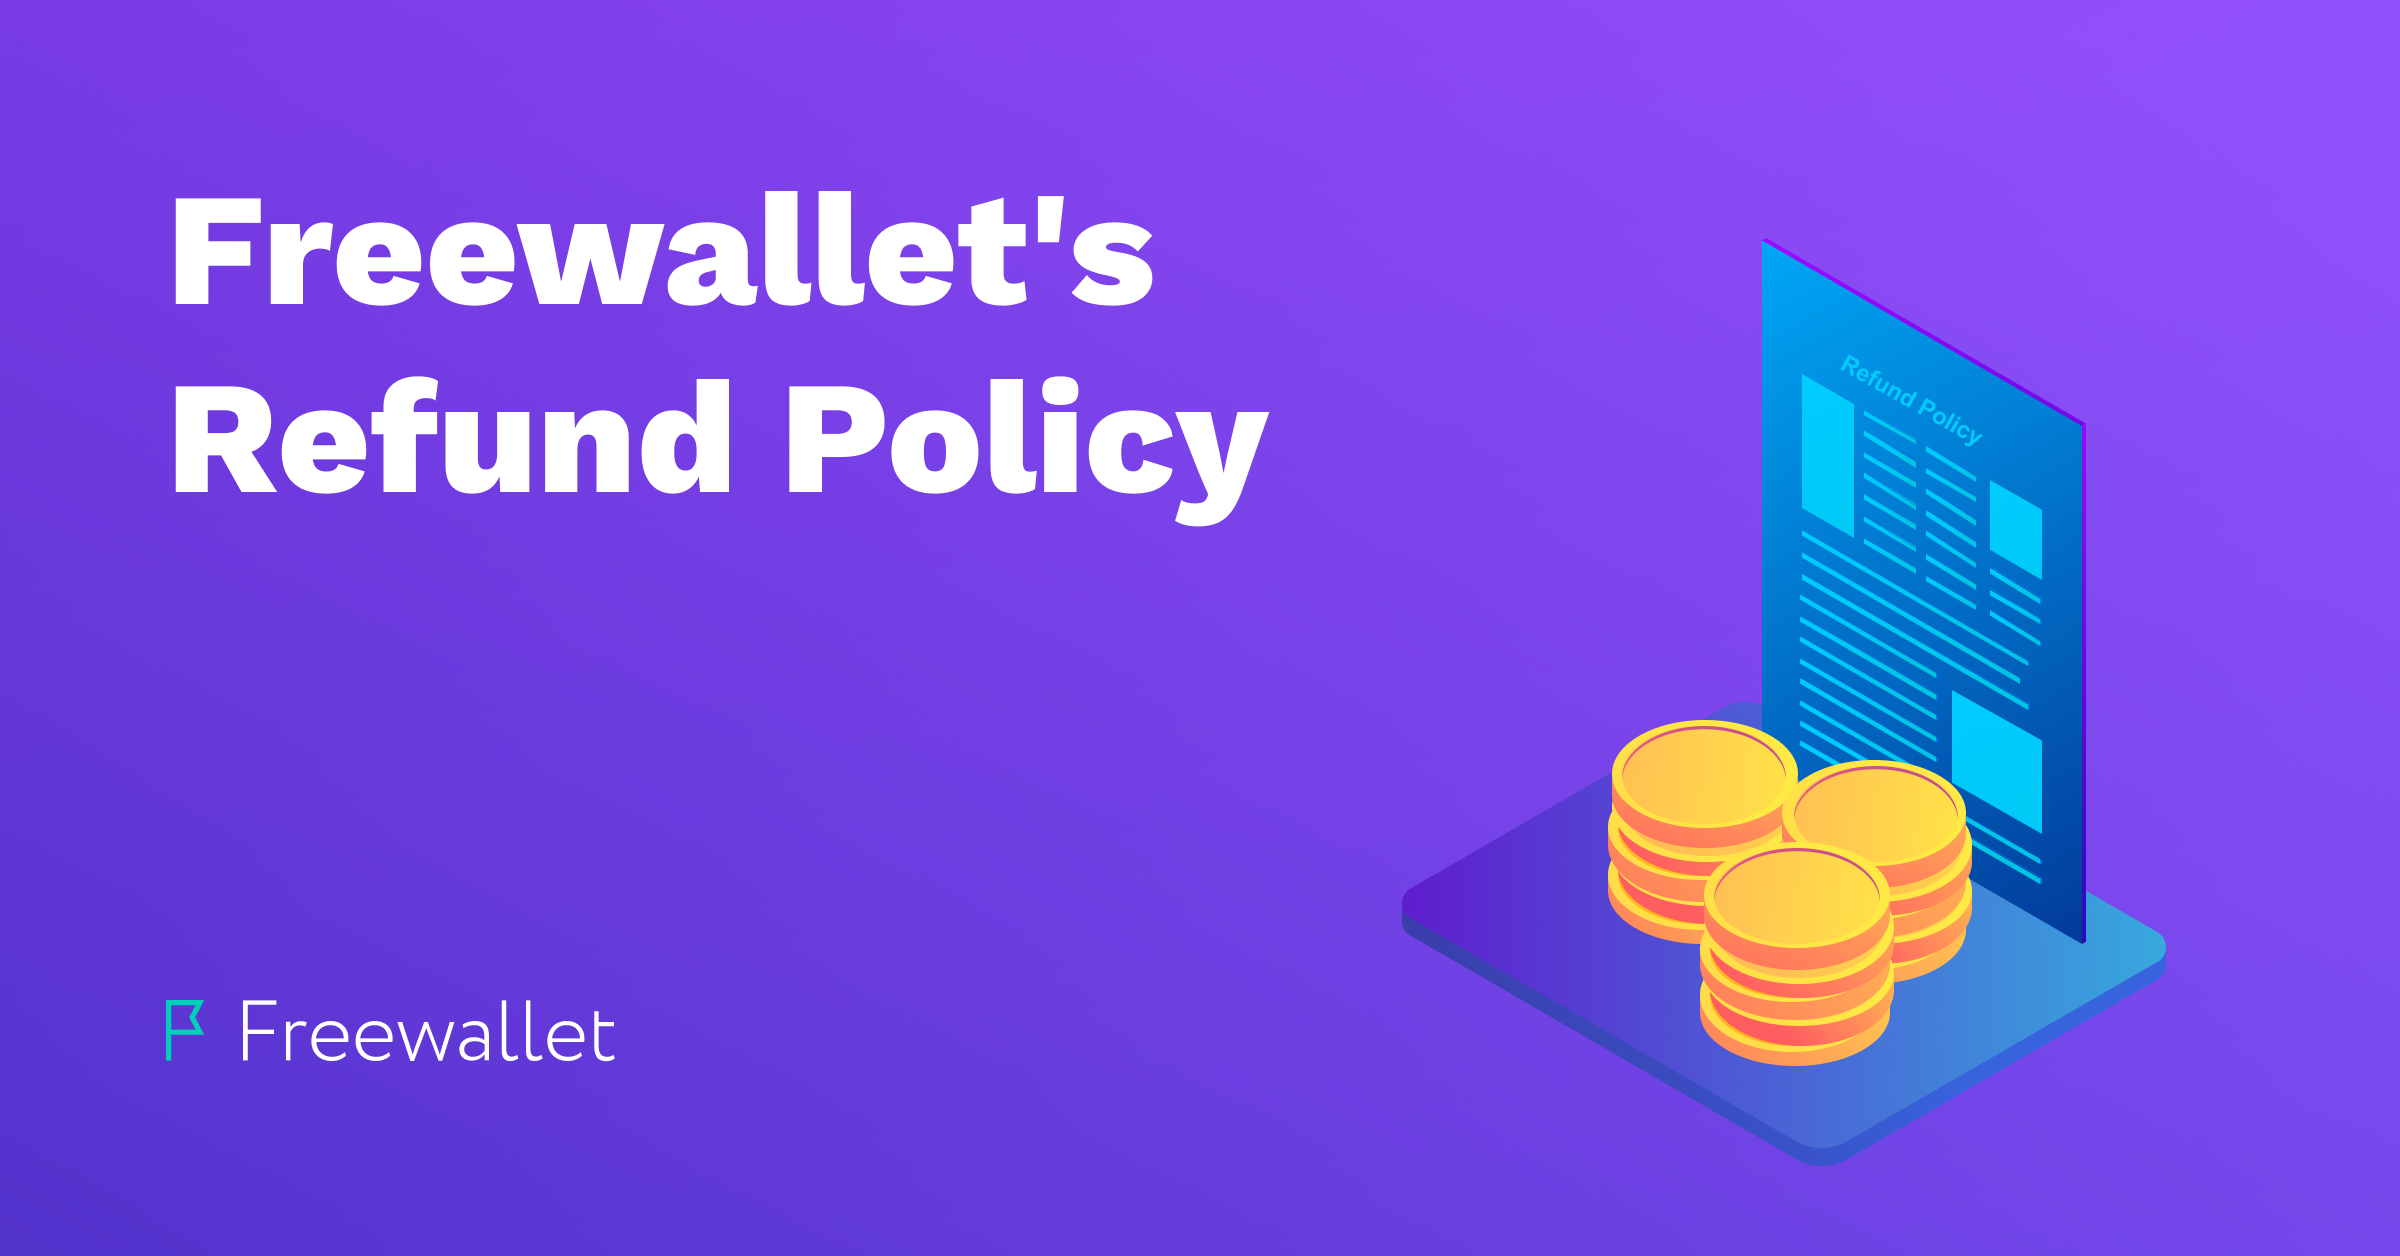 Freewallet's Refund Policy